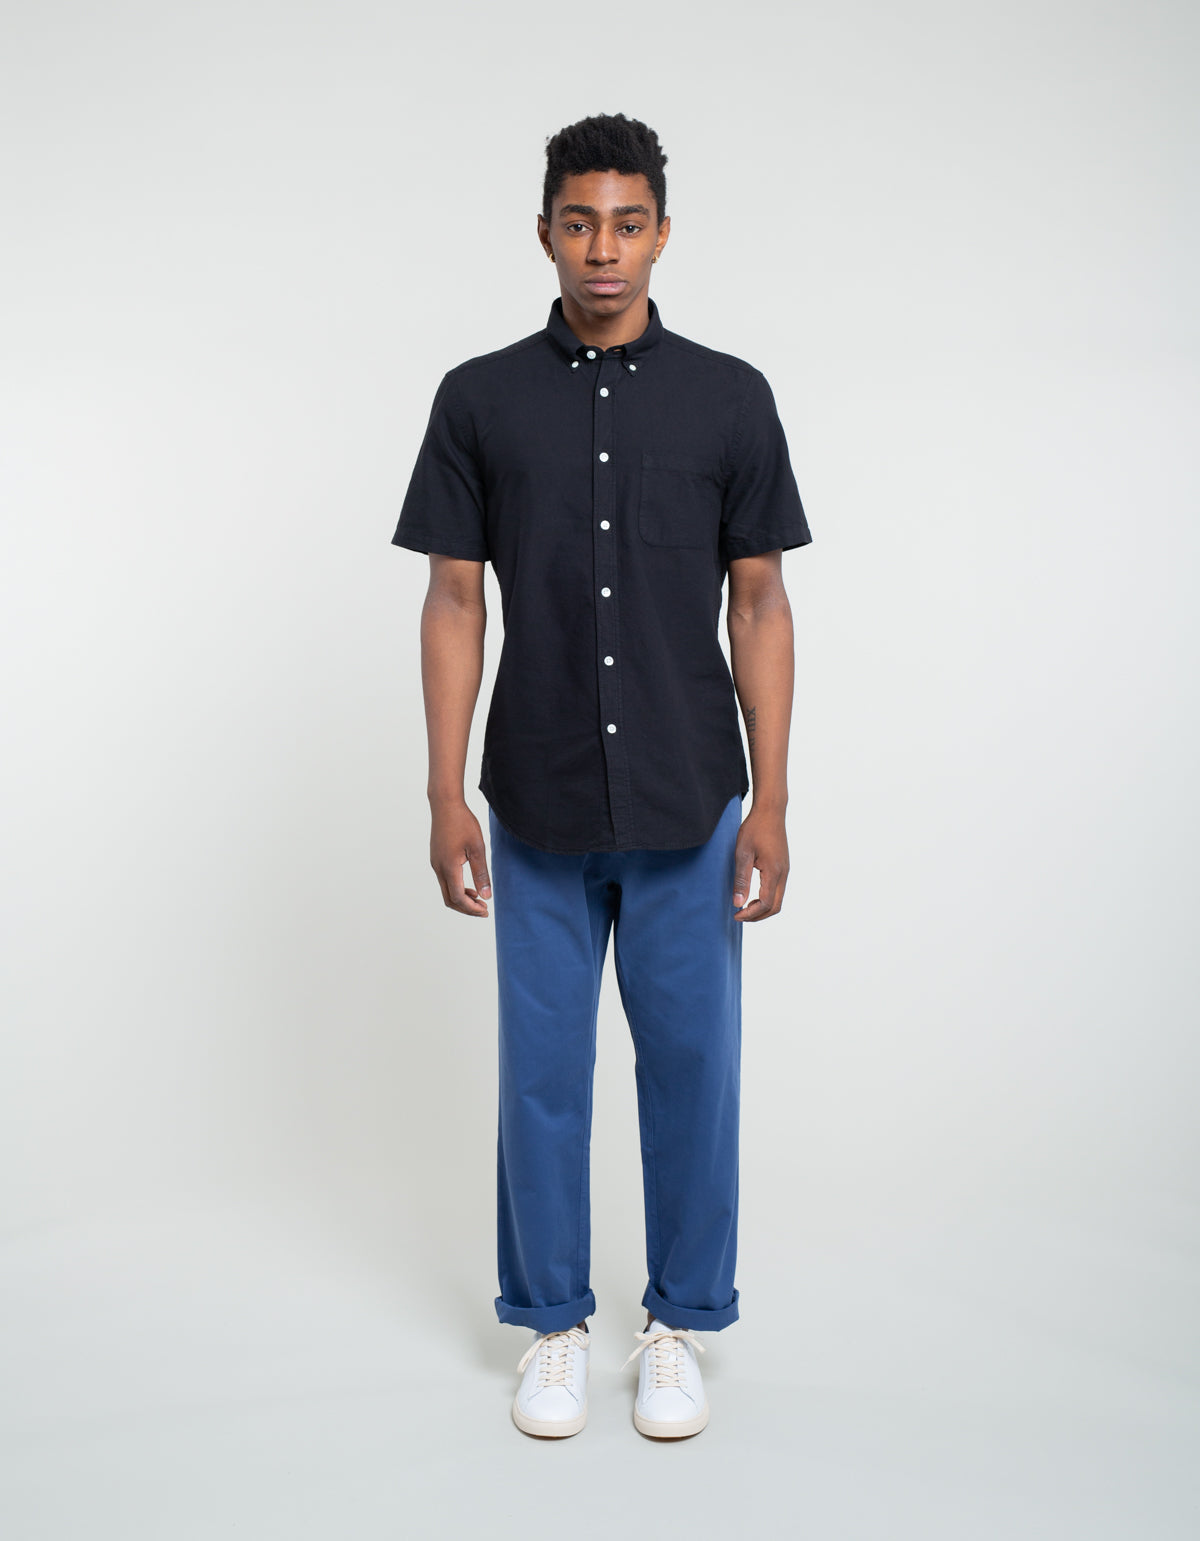 Portuguese Flannel Belavista Short Sleeve Shirt Black